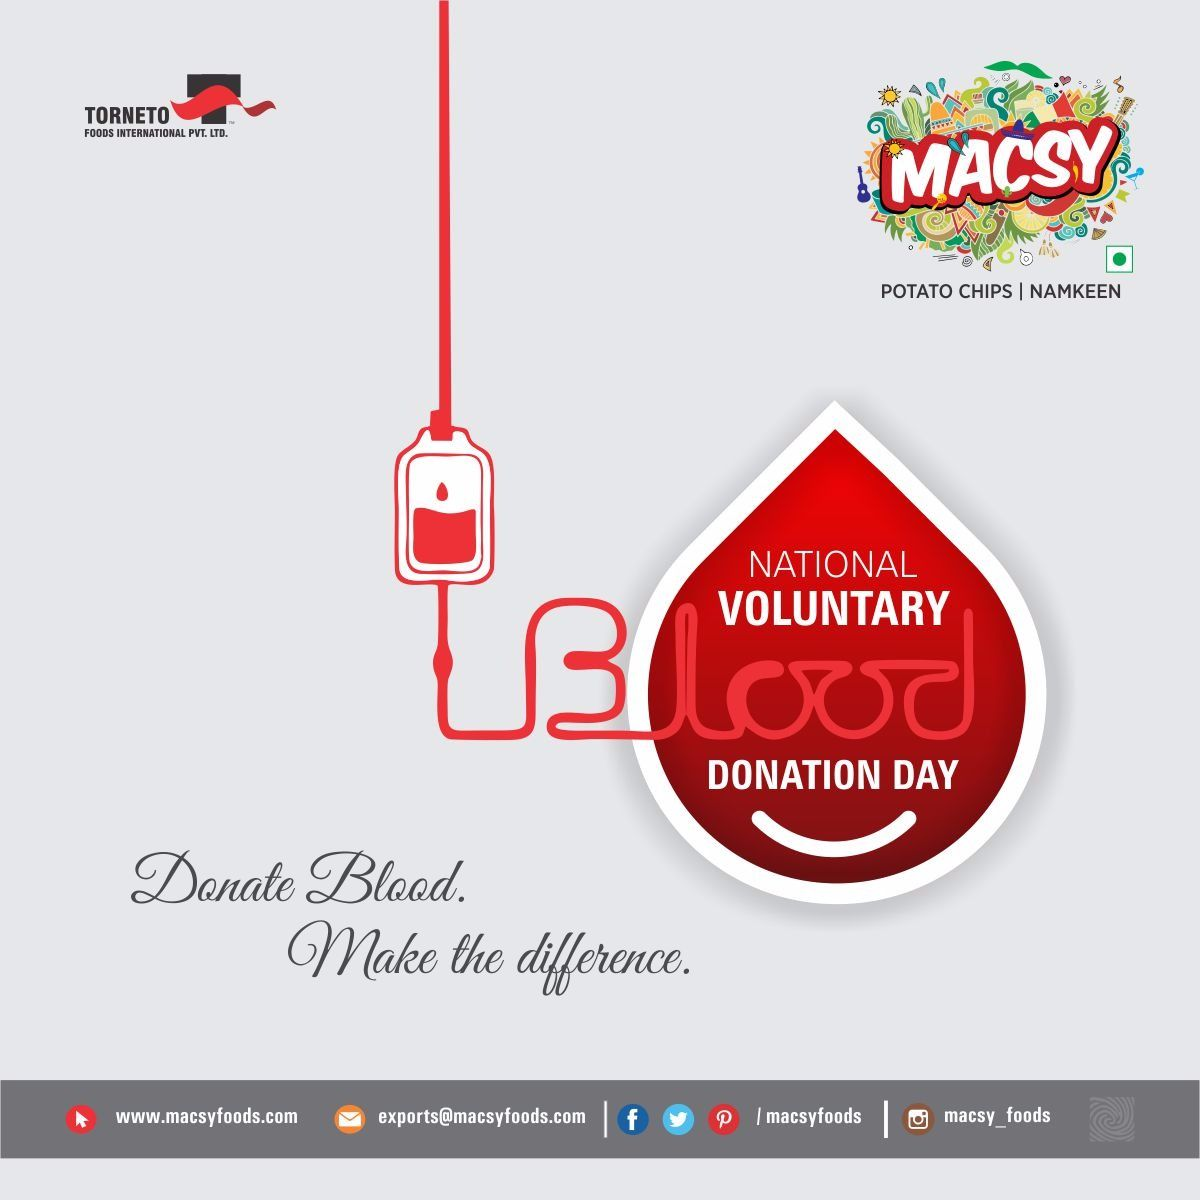 Donate Blood. make the difference, macsy food instafood